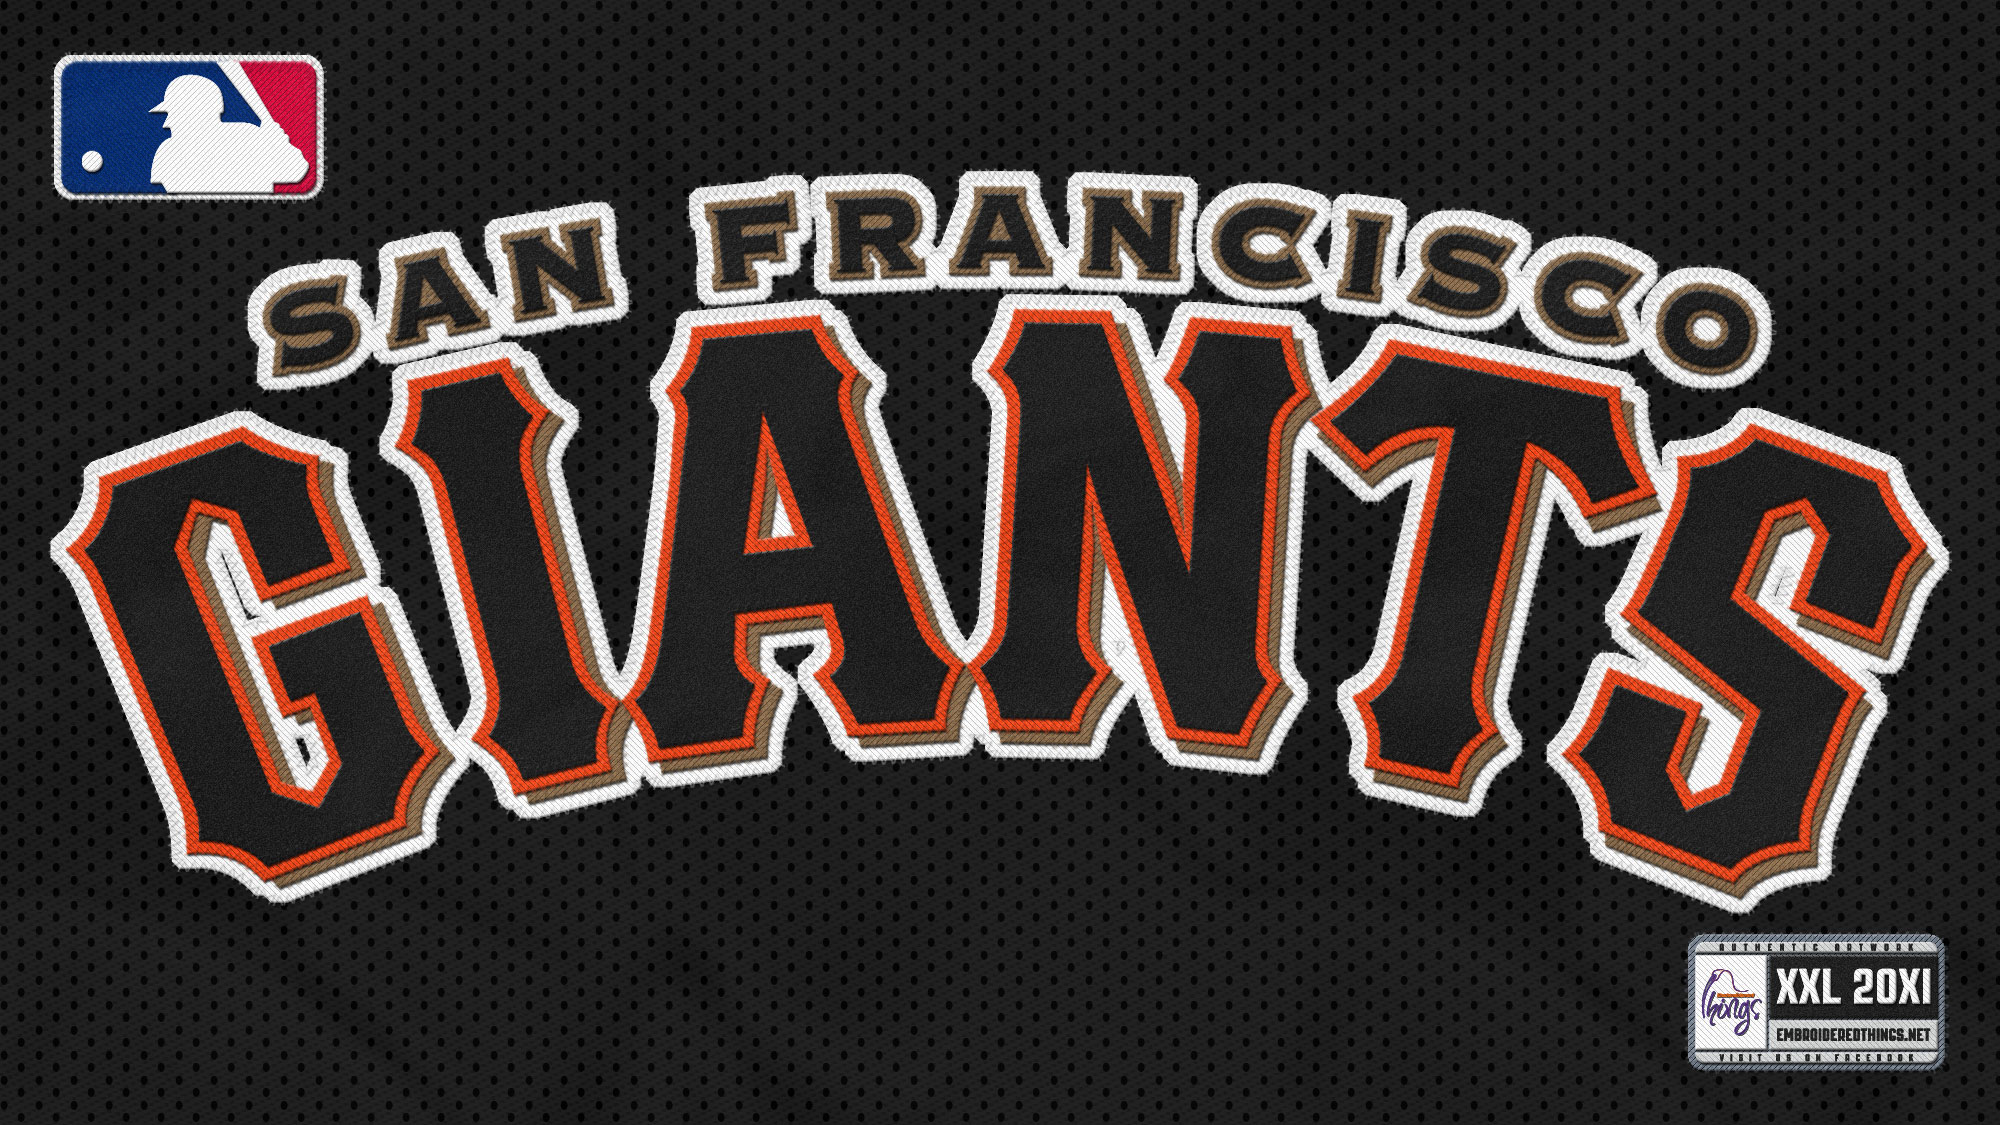 Giants Logo 2013 Images amp Pictures   Becuo 2000x1125